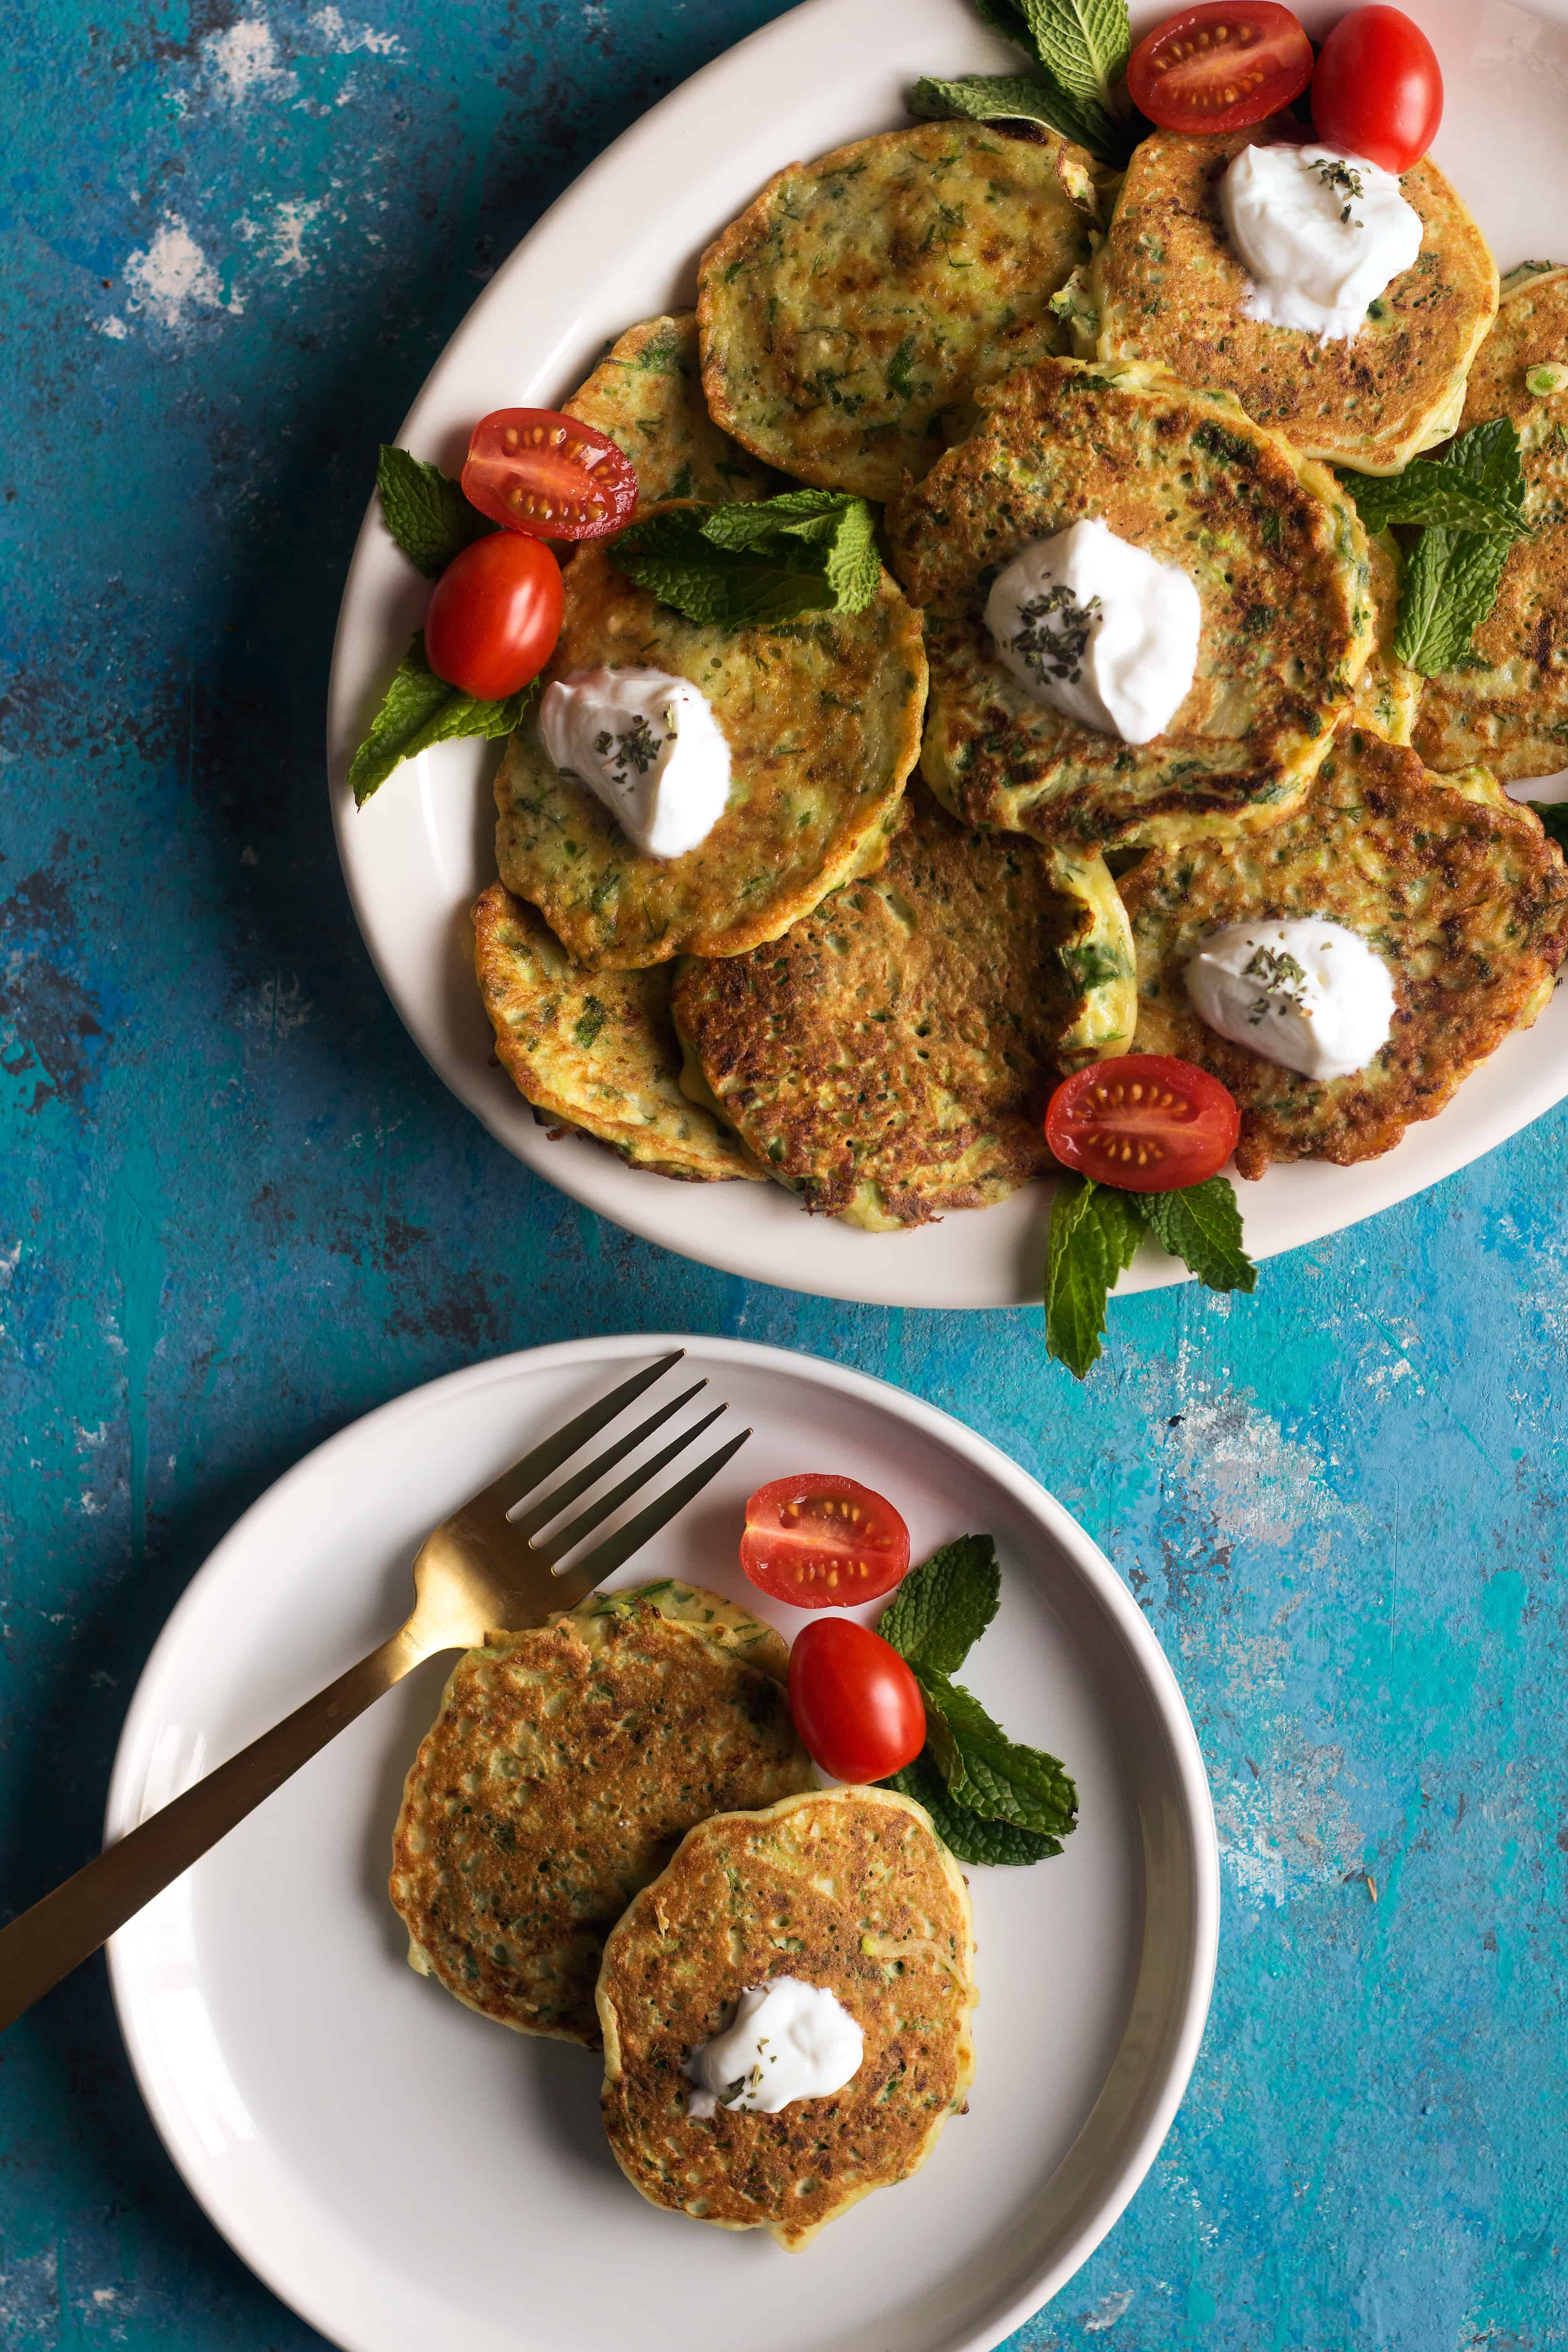 Mucver or zucchini fritters is a classic Turkish dish. This zucchini fritters recipe calls for fresh zucchini and herbs and it's very simple to make.